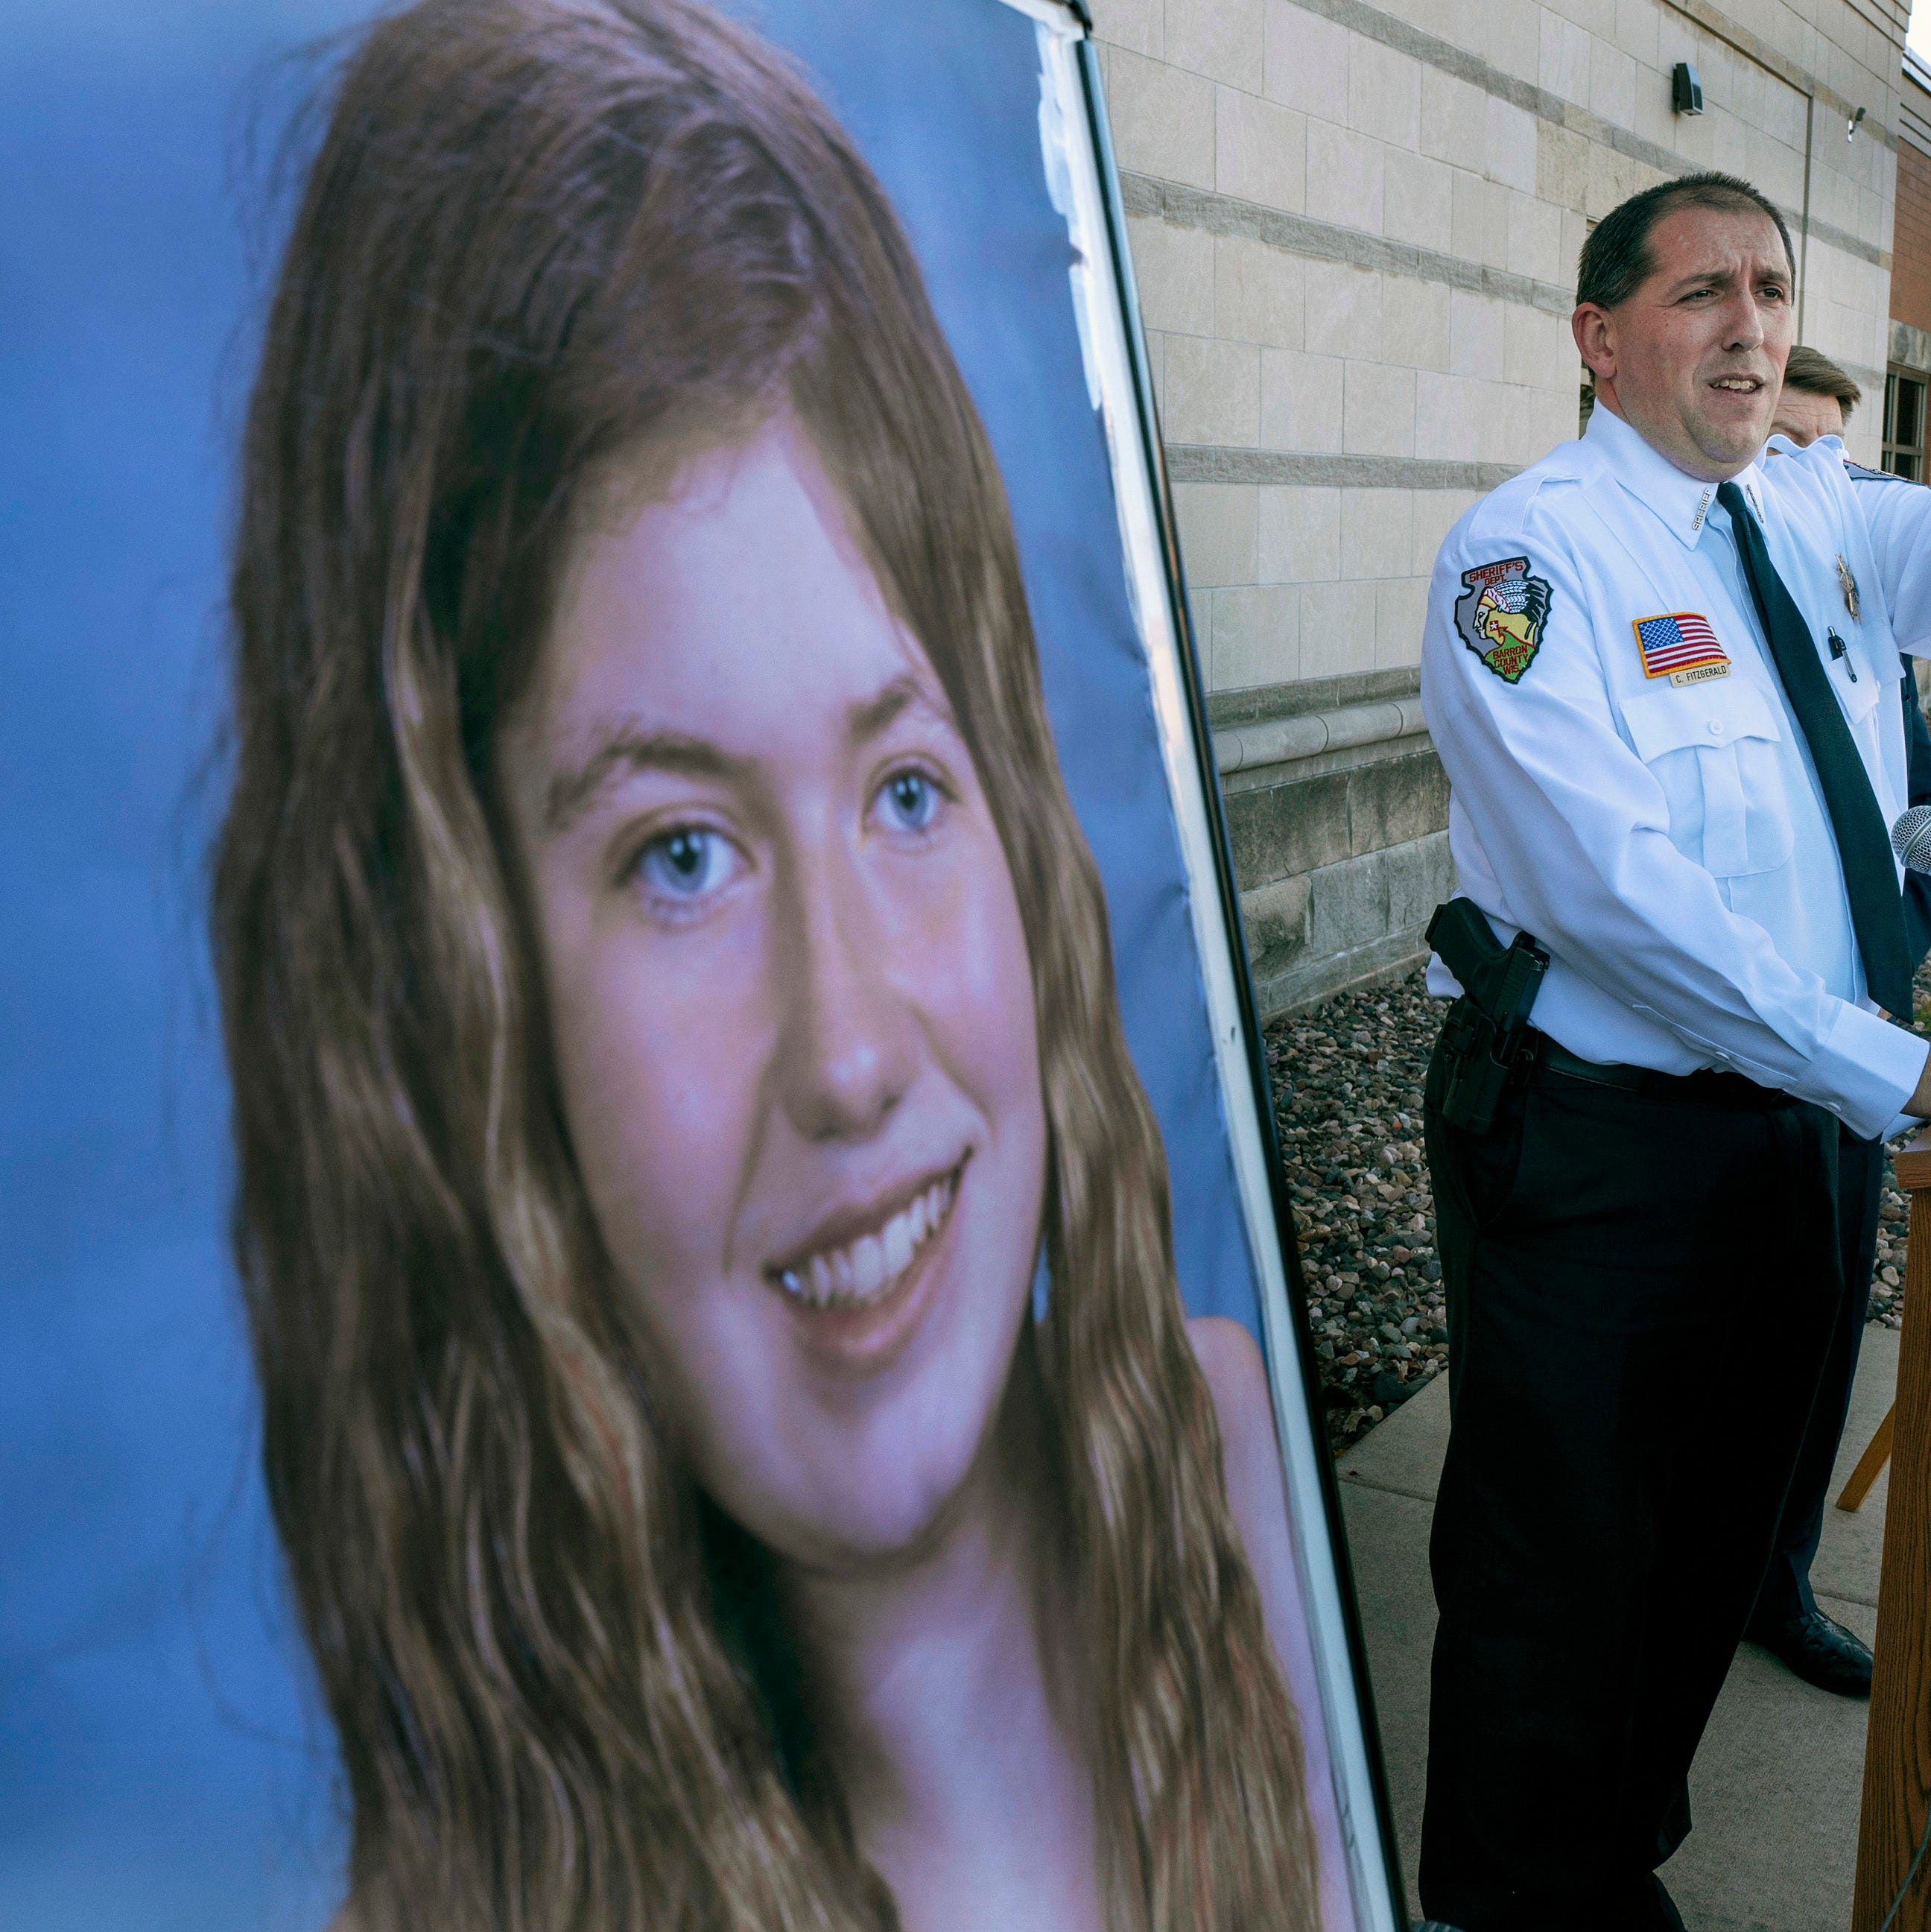 Jayme Closs captured the nation's attention. Why don't these other missing kids?